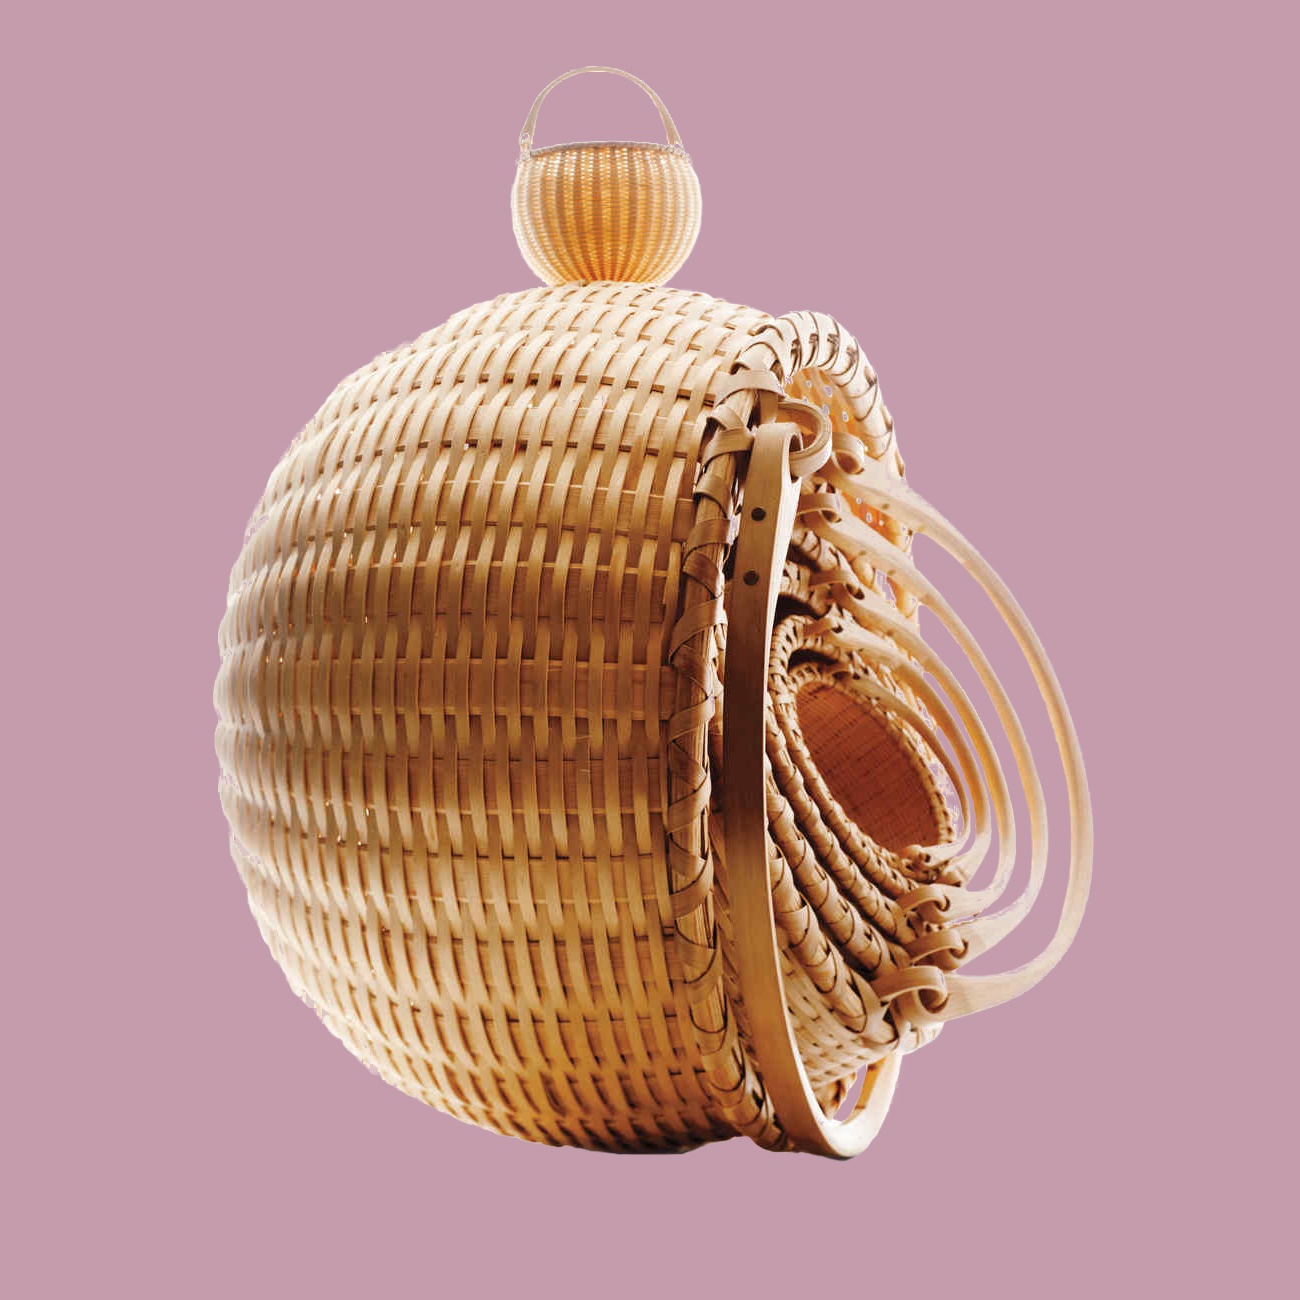 wicker baskets on pink background